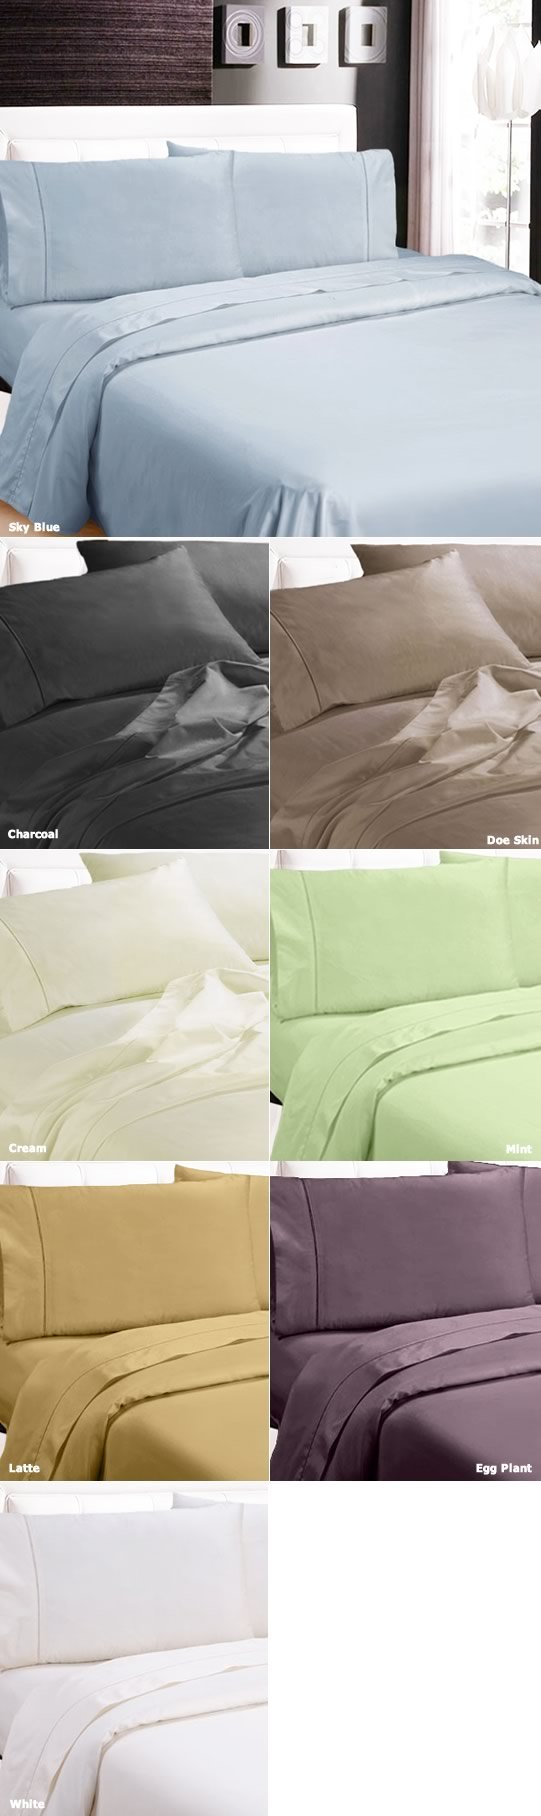 1100TC Egyptian Cotton Sheets